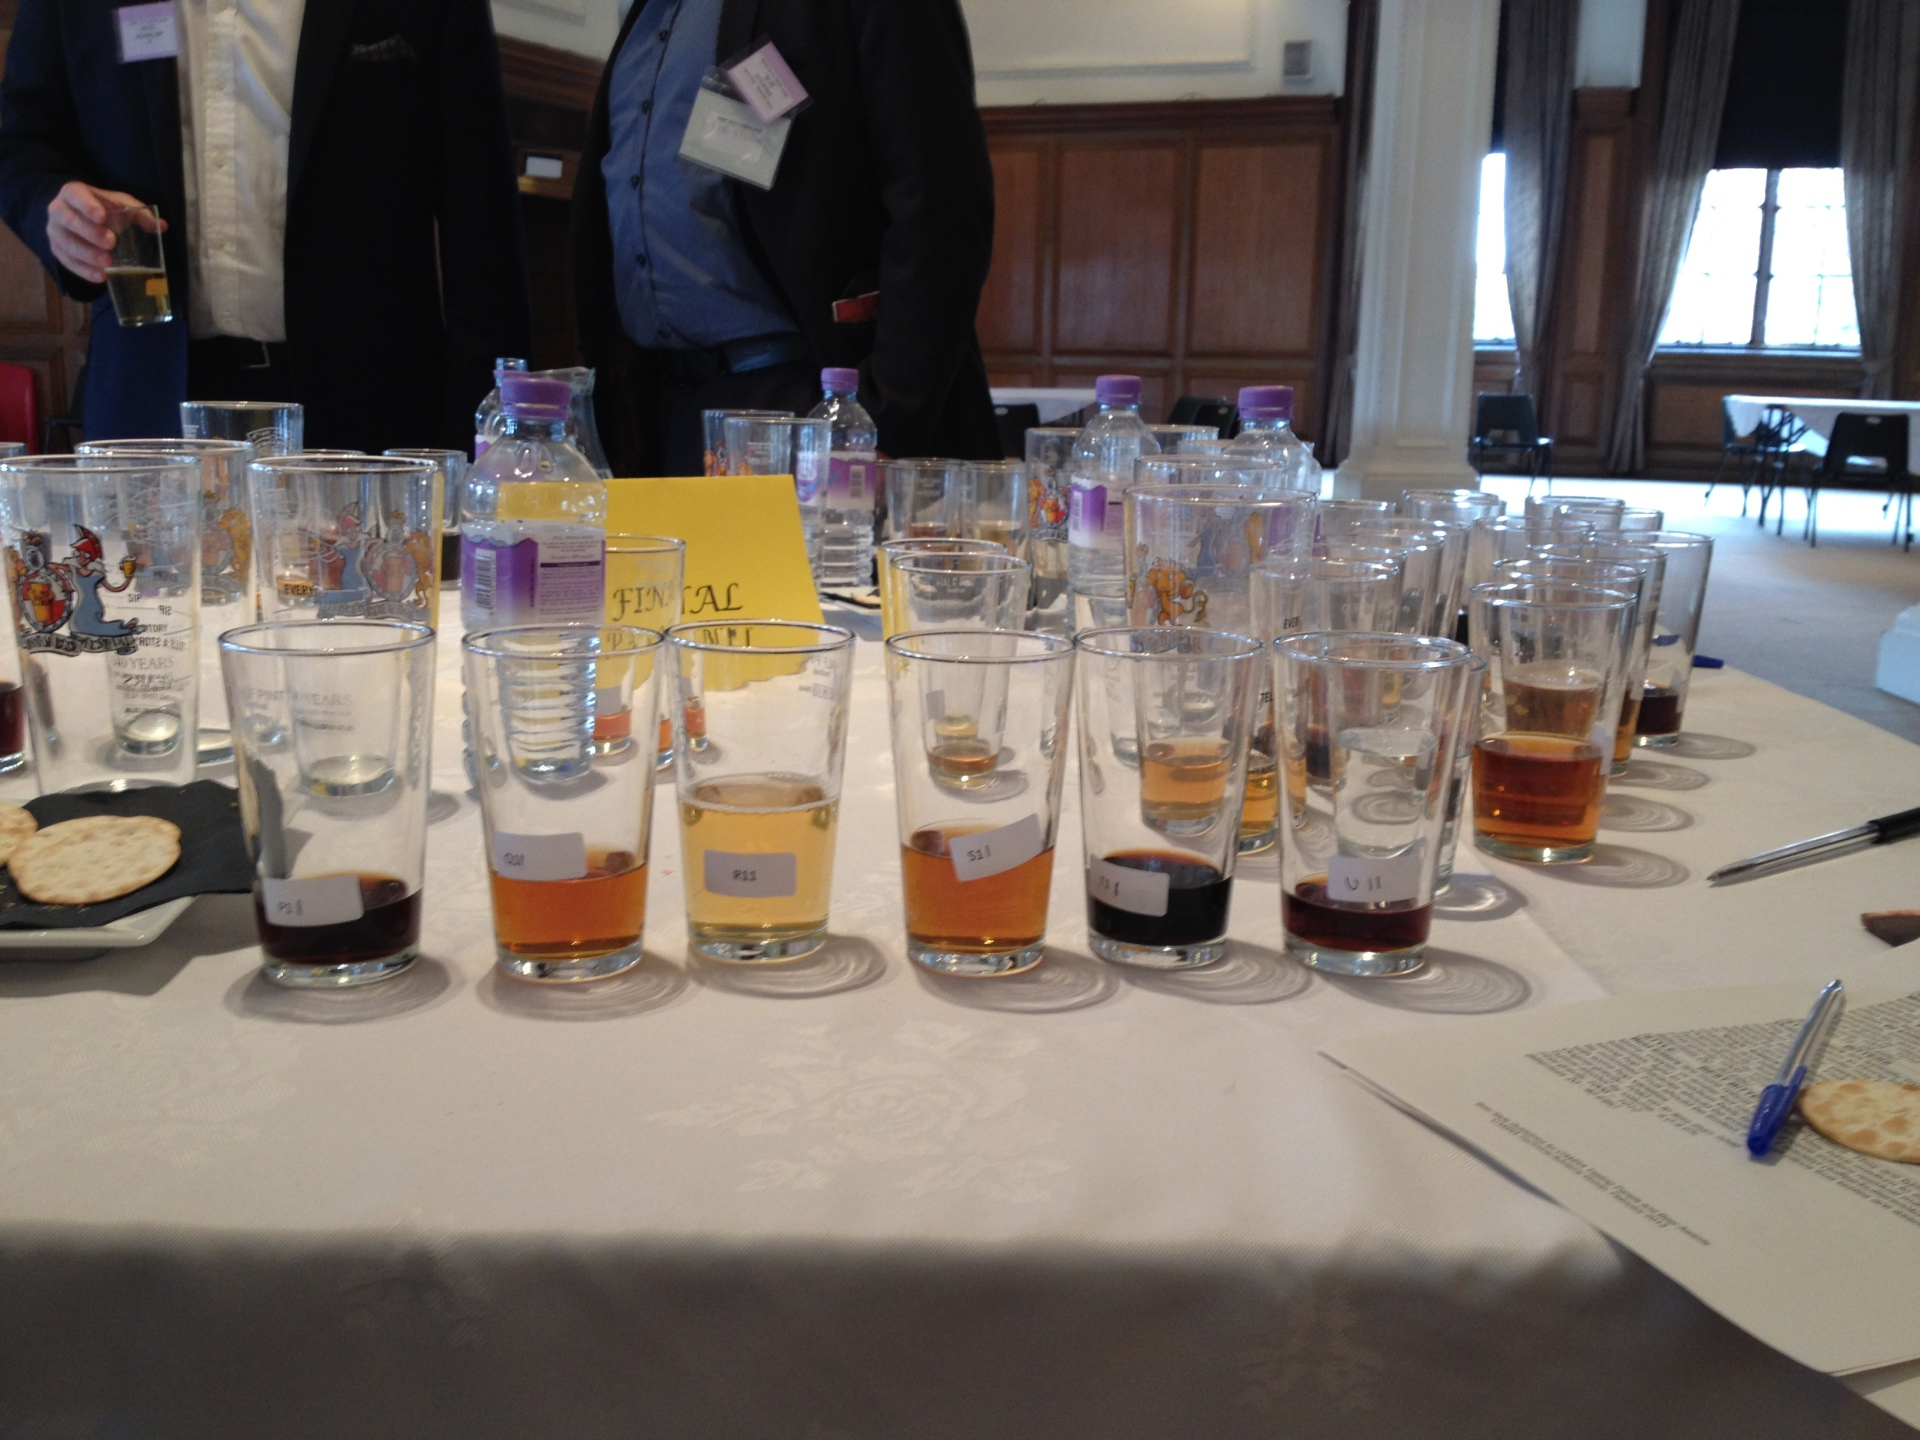 How CAMRA's Champion Beer of Britain is chosen